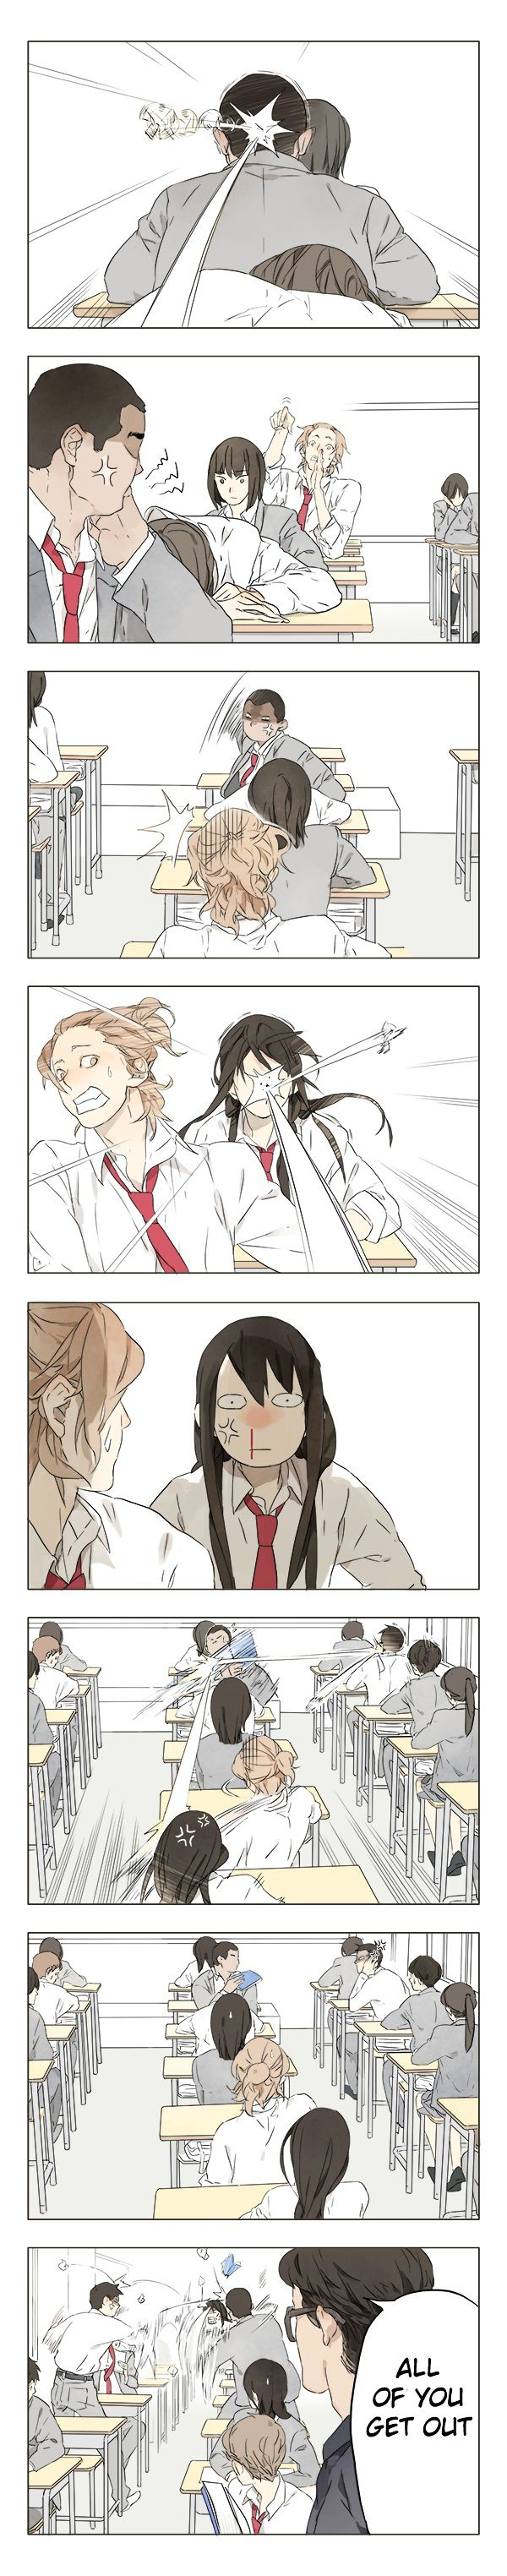 Tamen De Gushi. I want this to happen in my class lol. Love the art btw